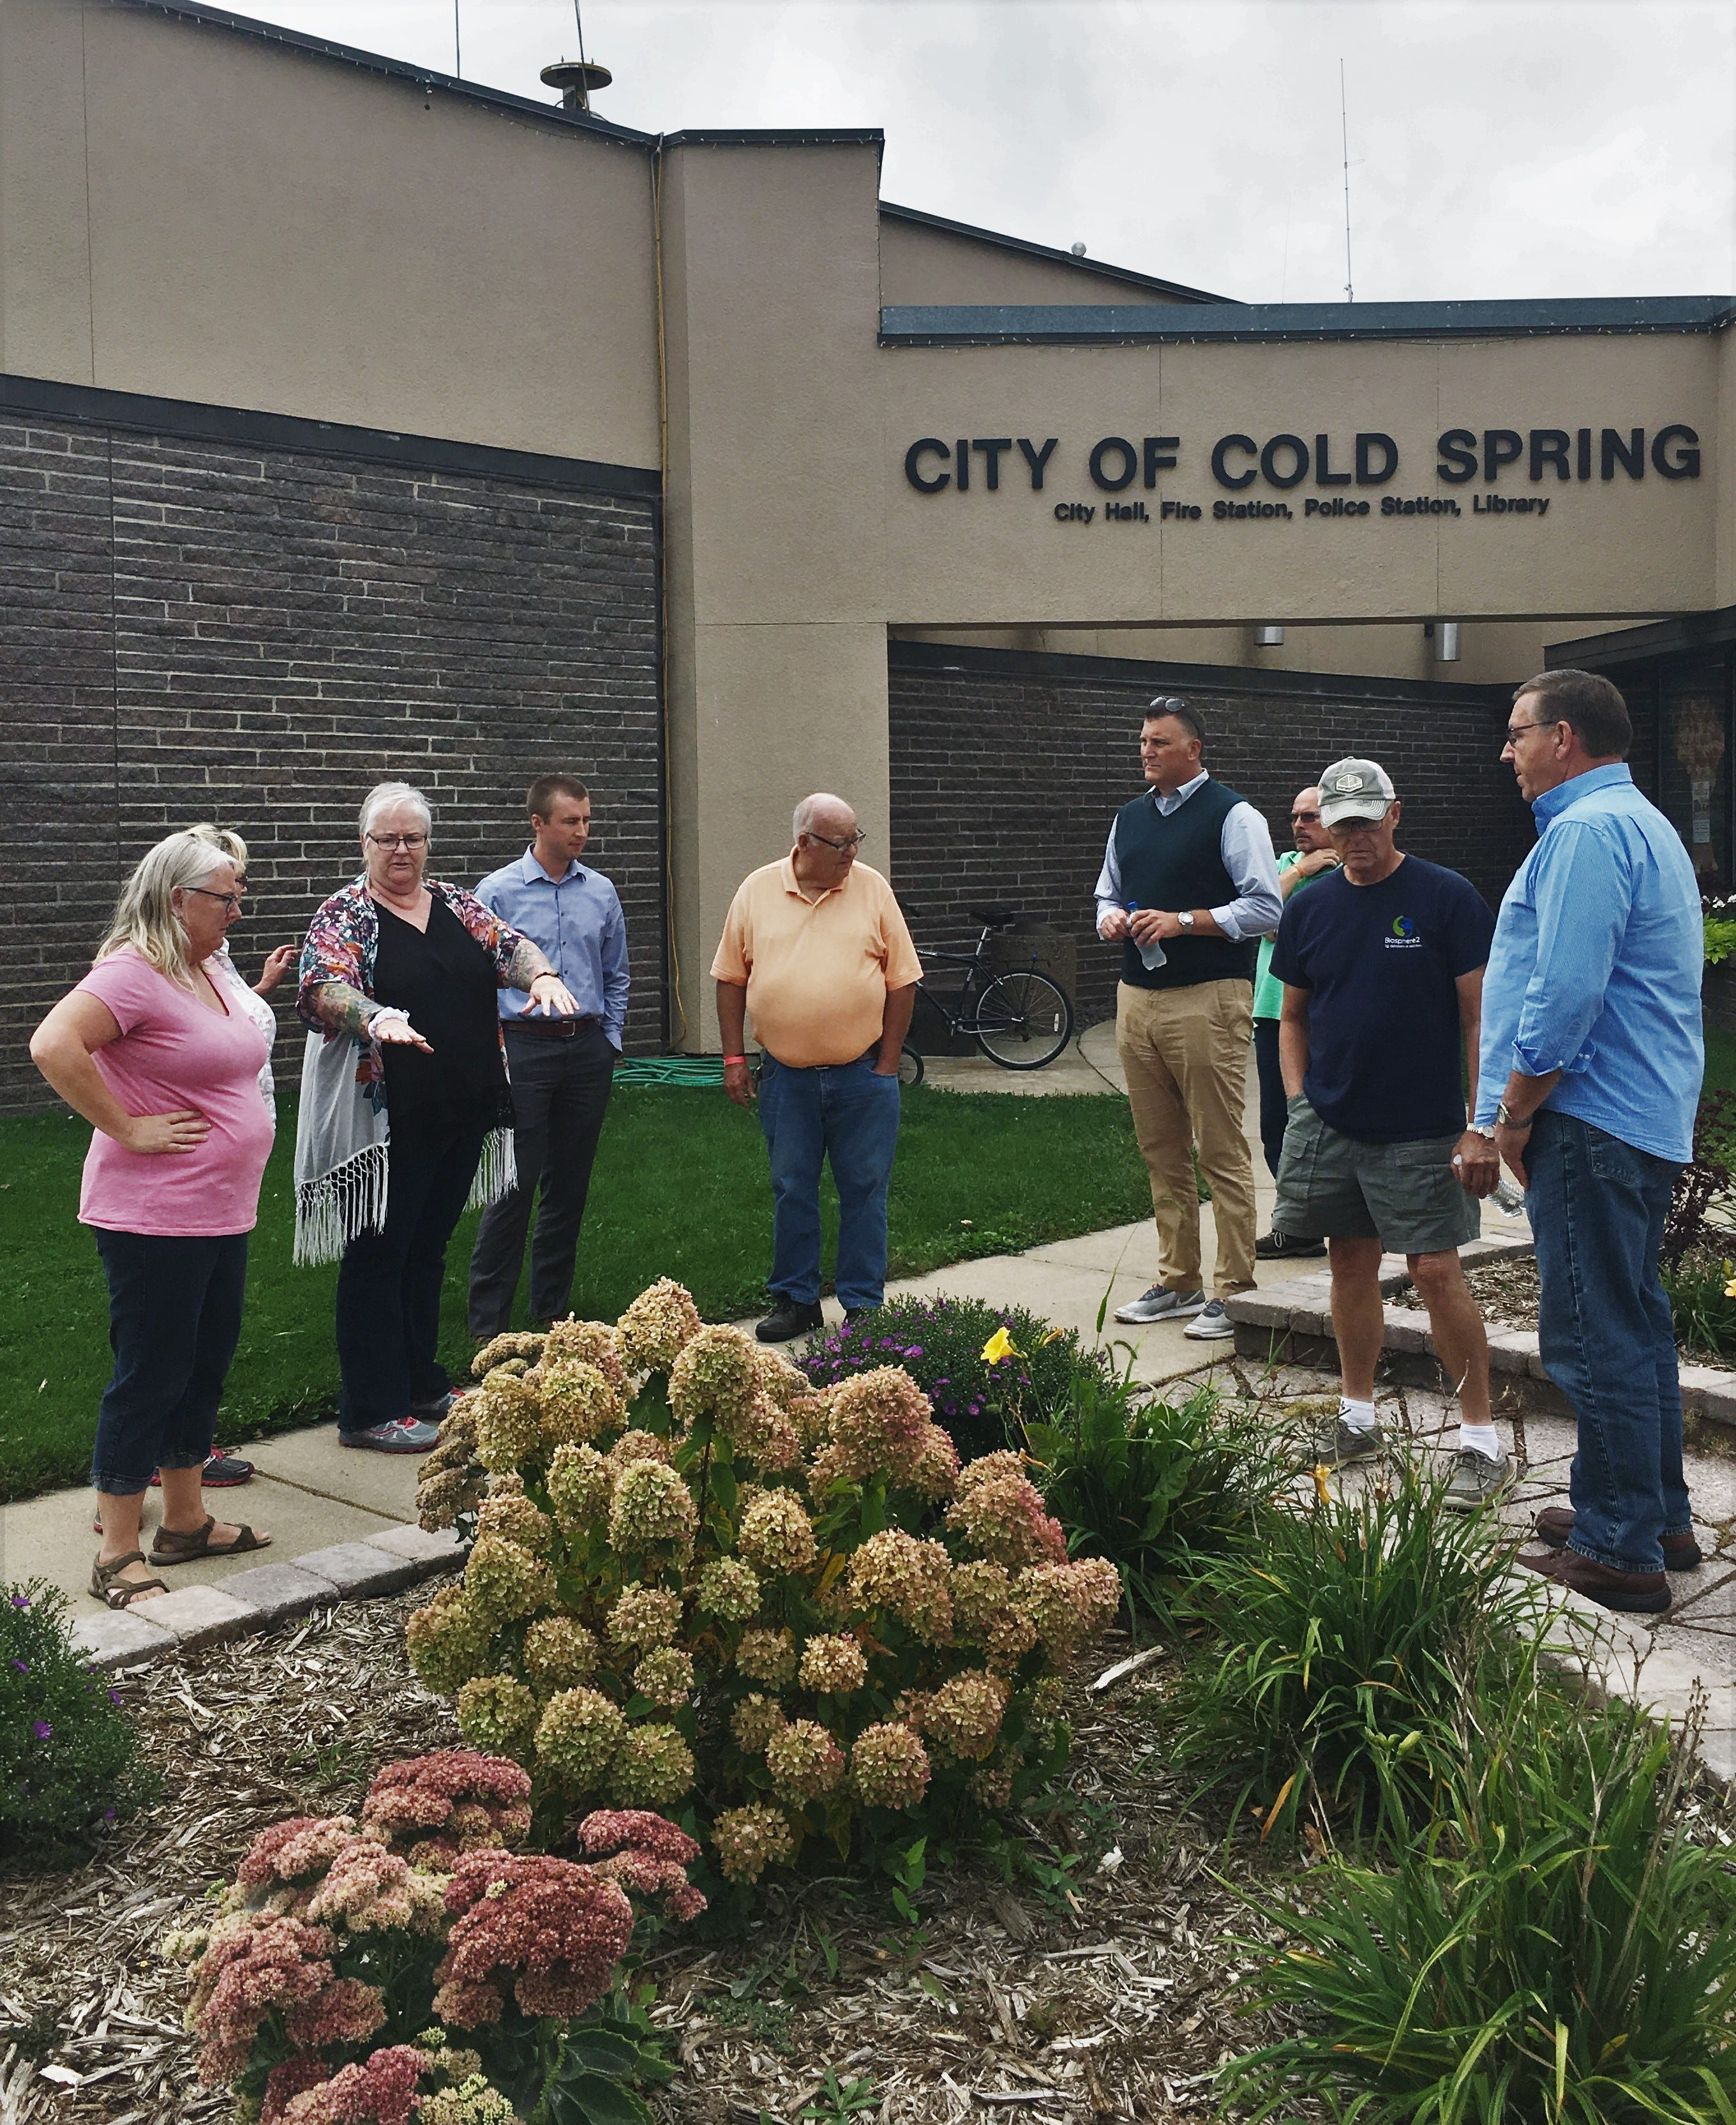 A group toured downtown Cold Spring with Deb Brown, a nationally-known community development specialist, on Friday, Sept. 14, 2018. Brown suggested recruiting master gardeners to help tend to community property.